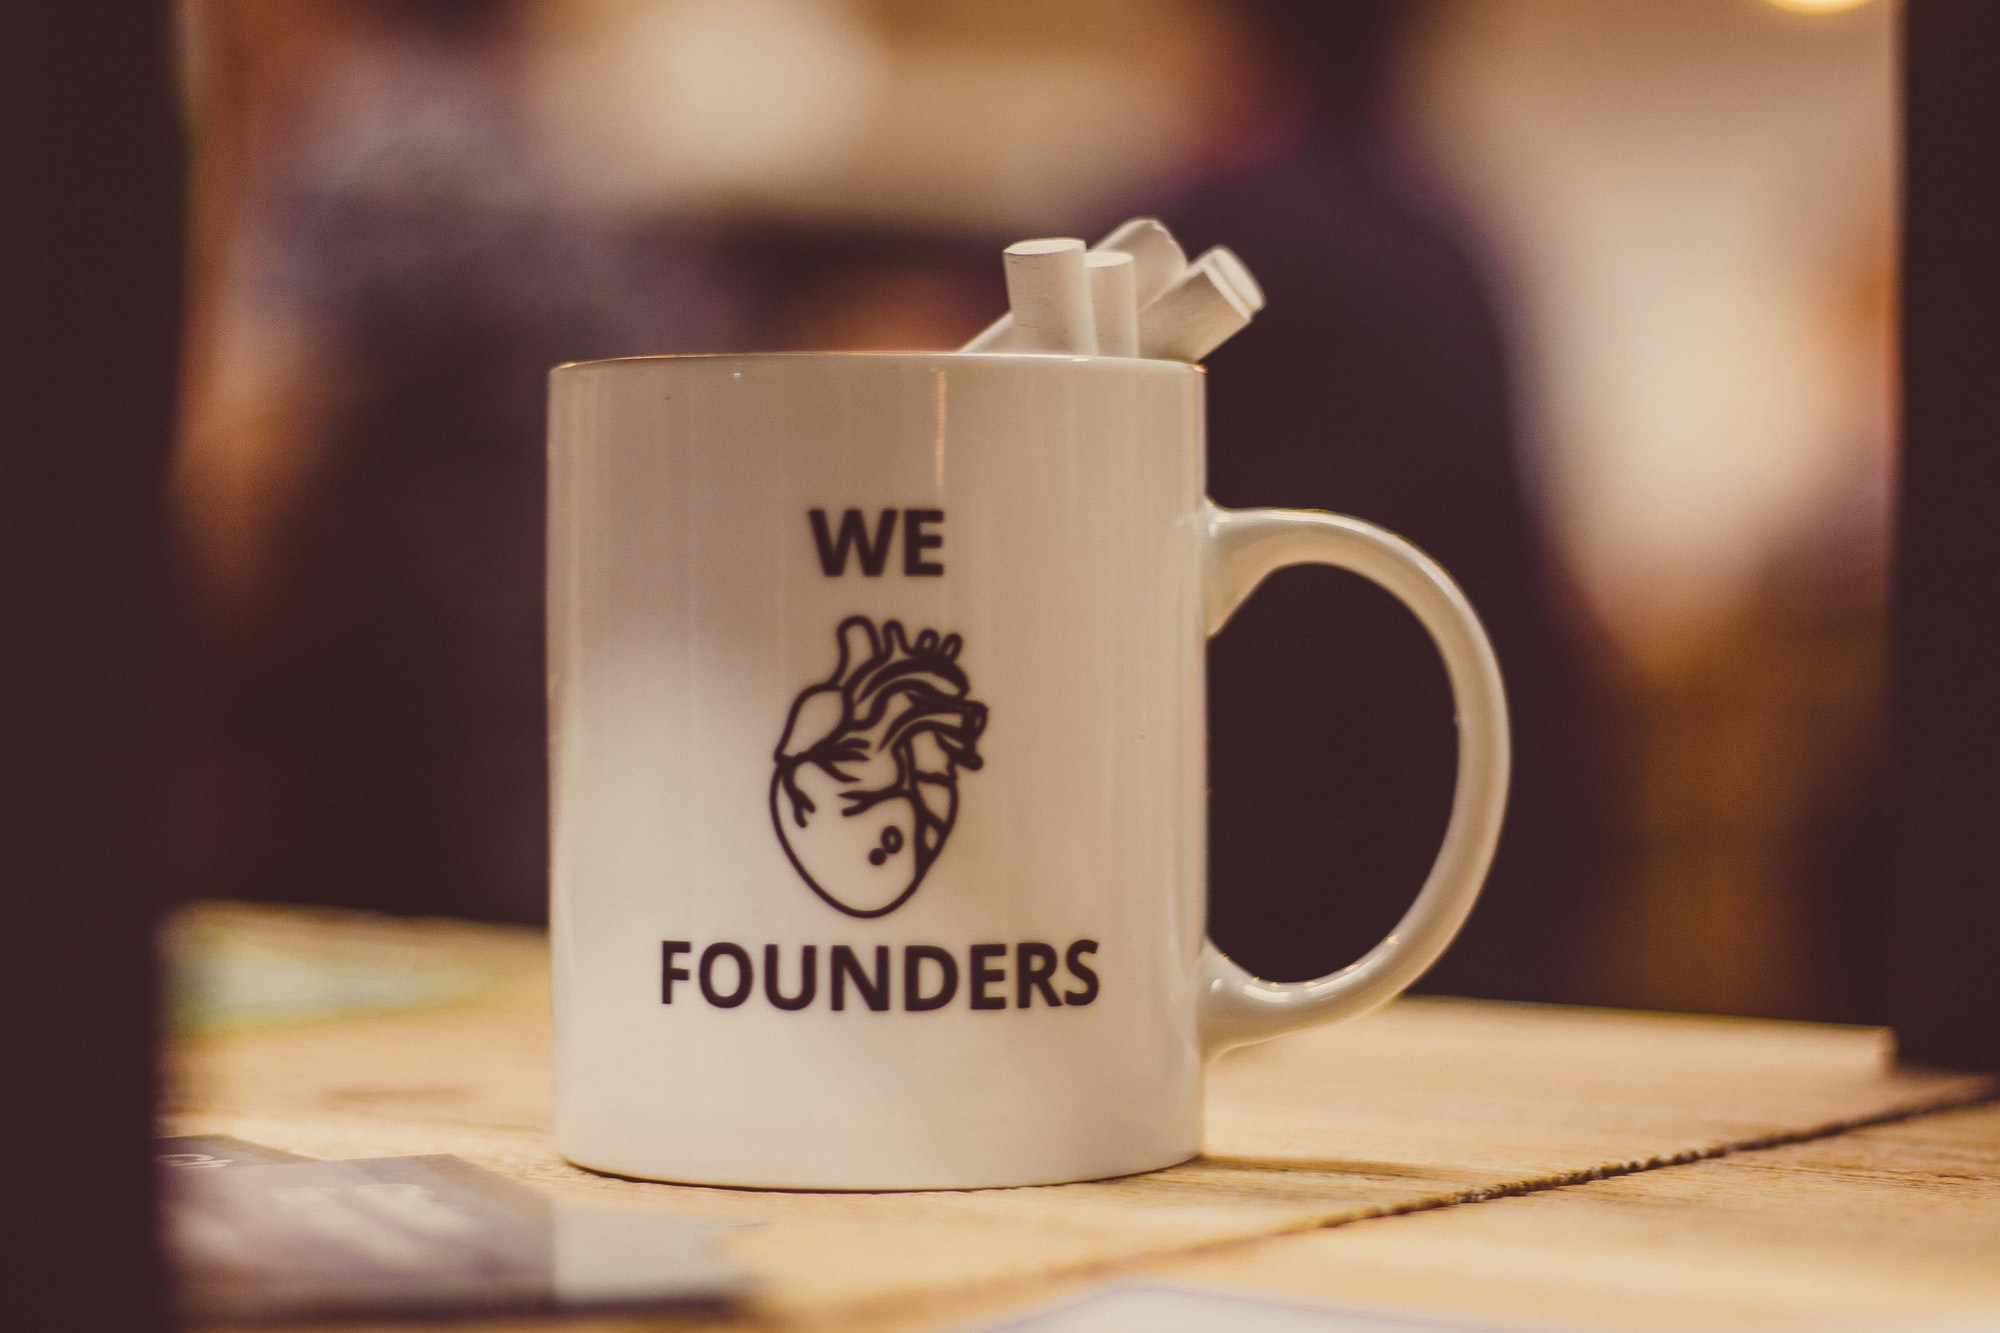 Founders guide to developers